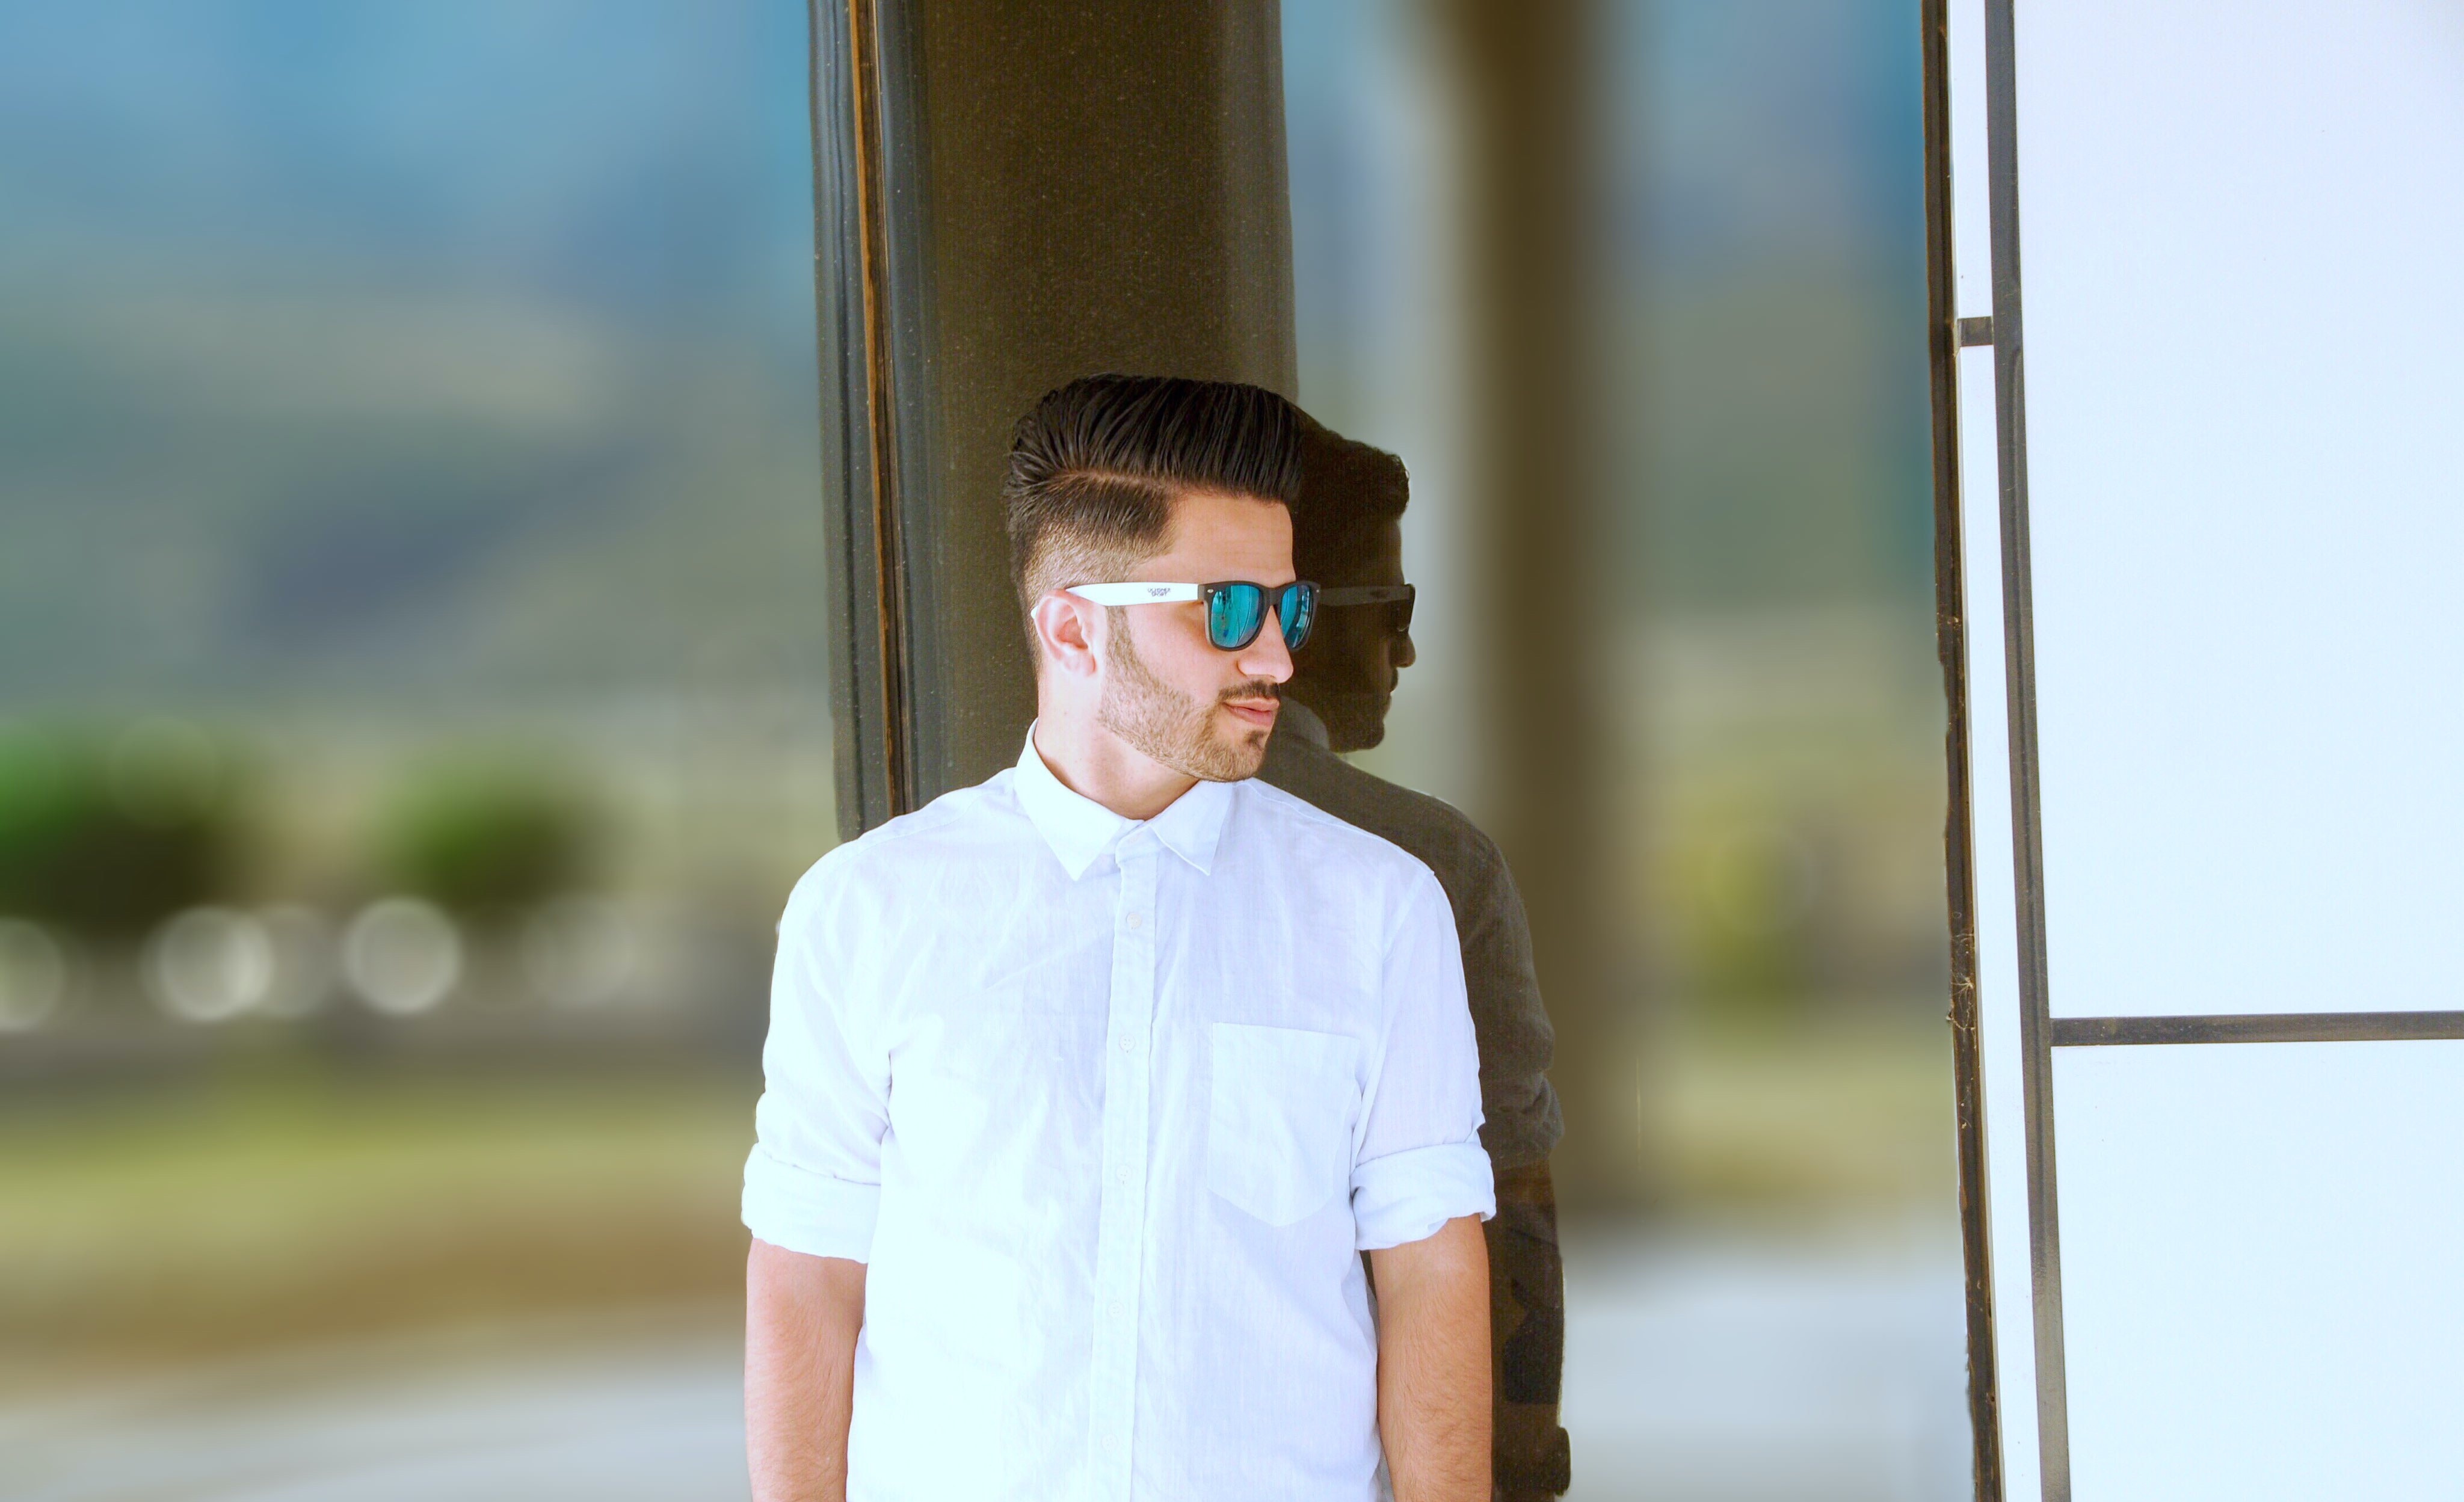 man leaning on glass wall during daytime